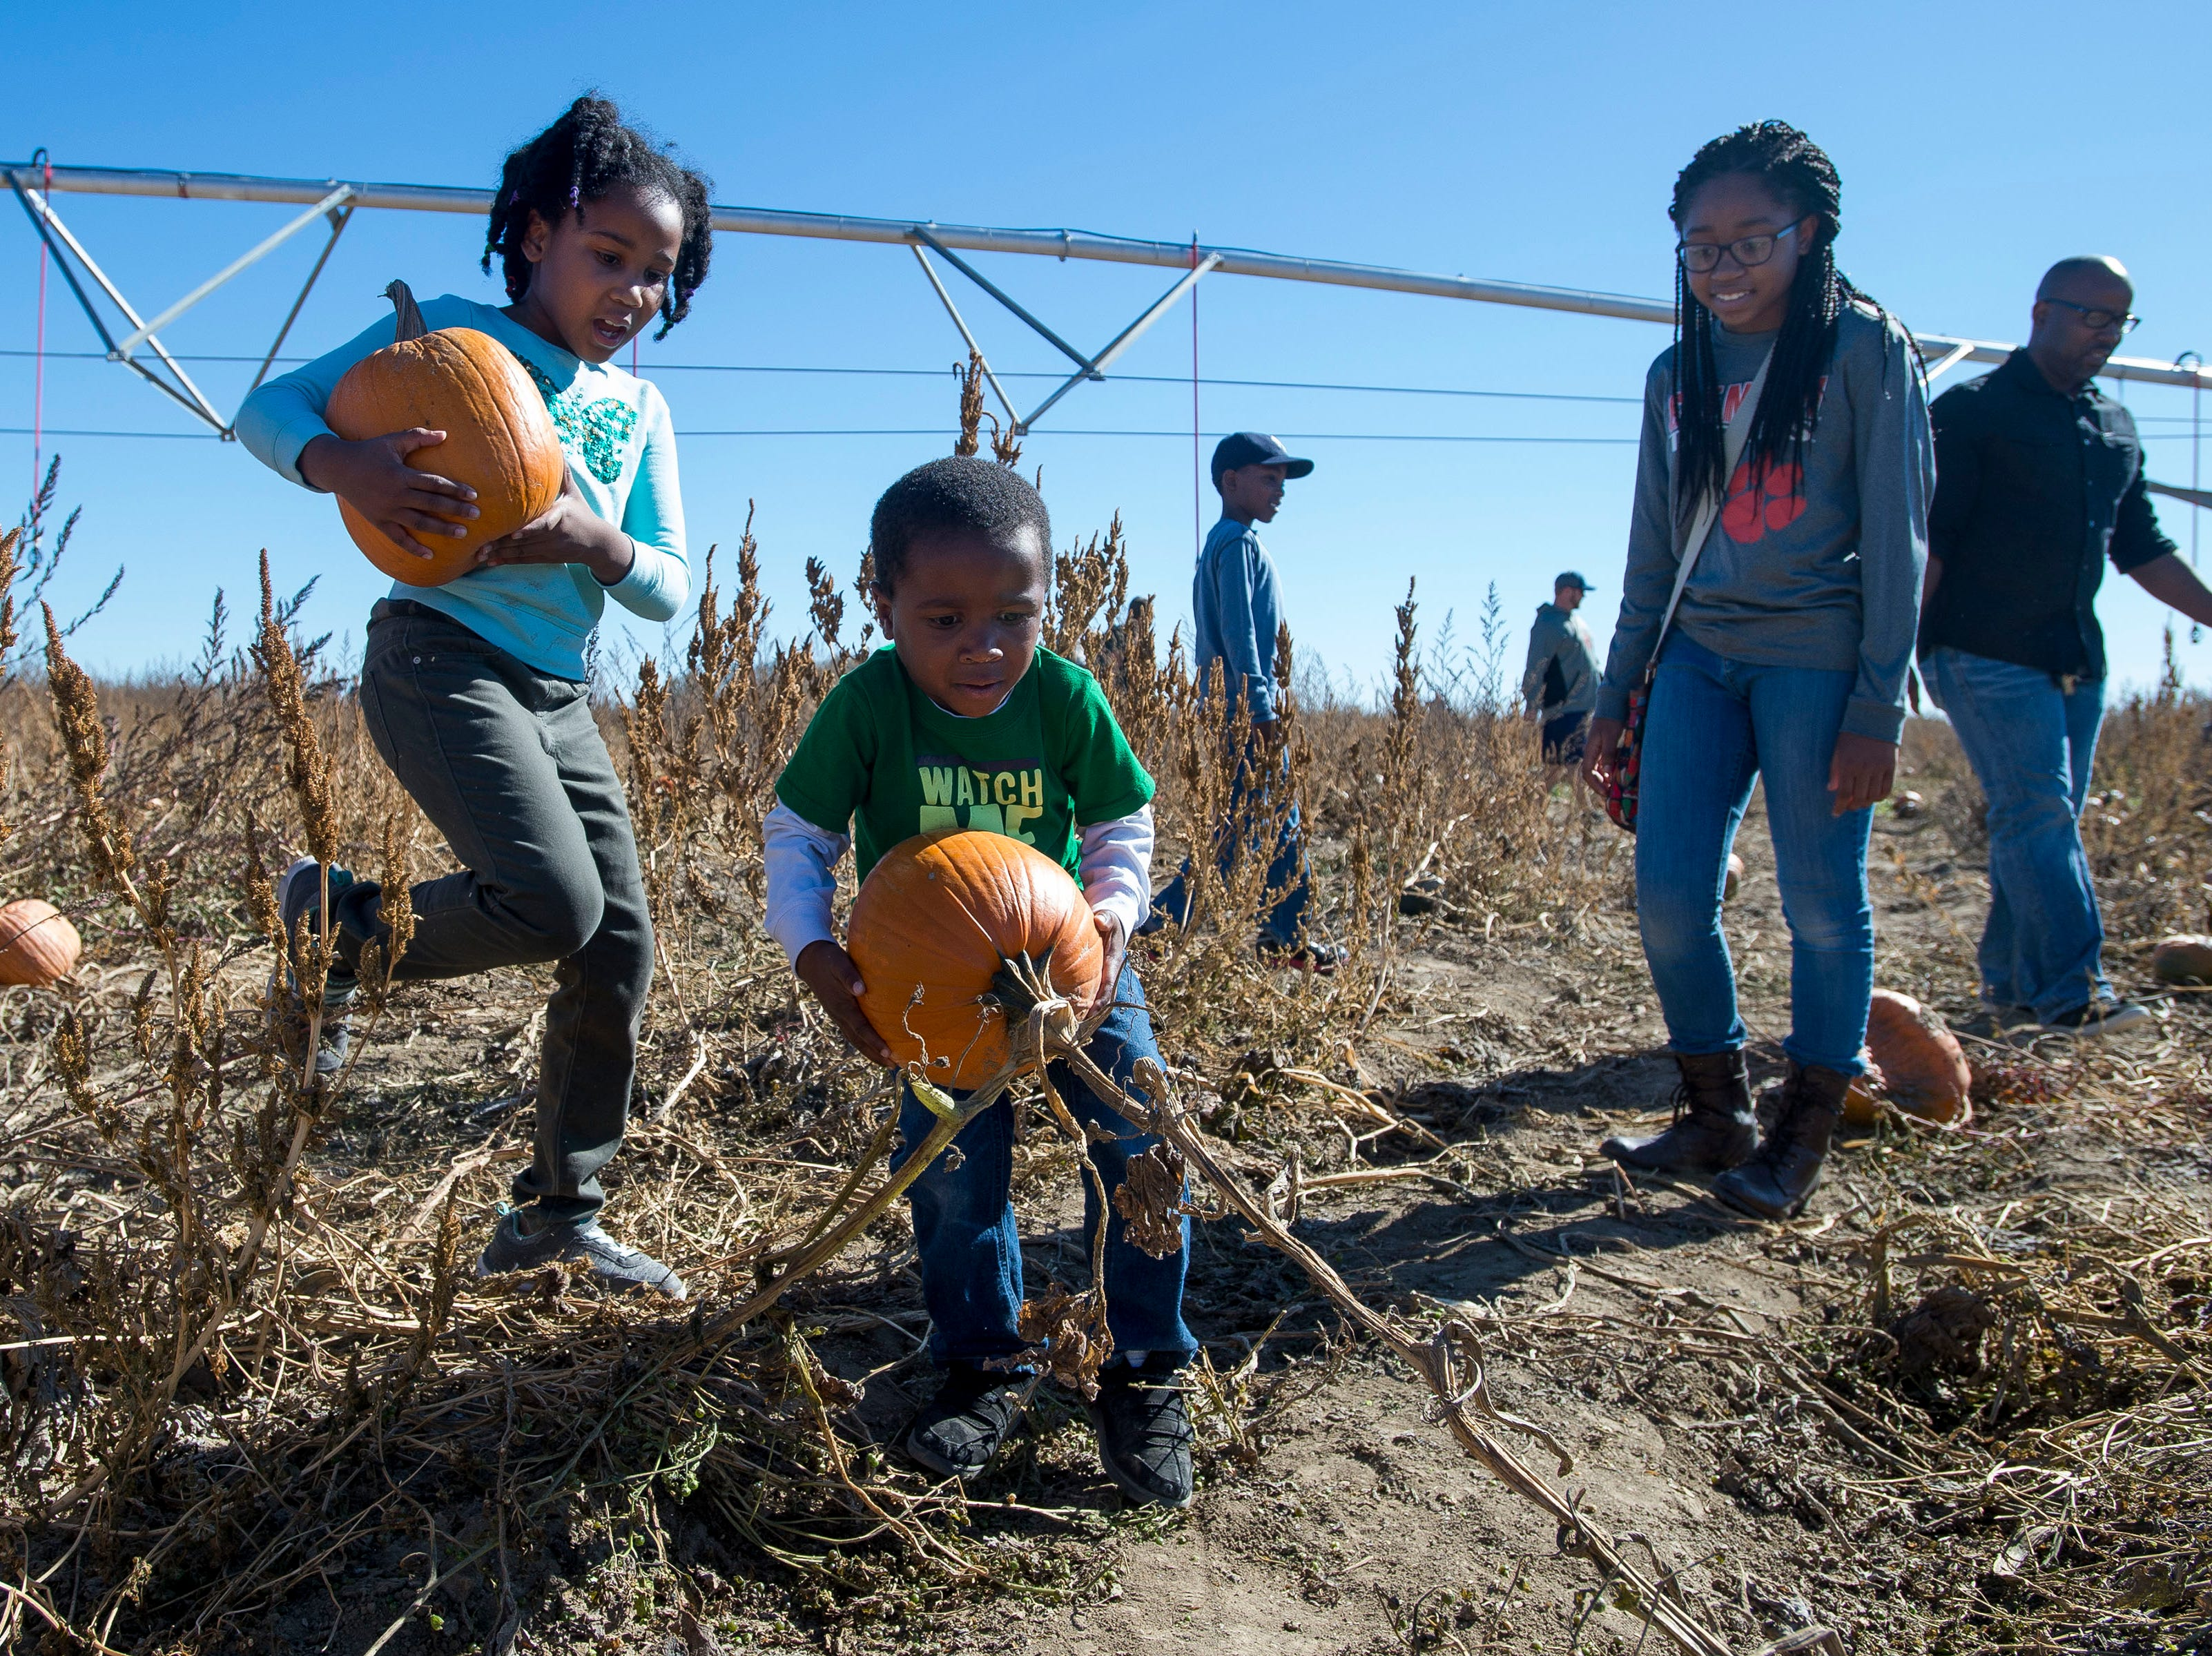 Four-year-old Xavier Wilson picks up a pumpkin while big sisters Rebekah, 13, and Elisabeth, 7, look on while his father James and older brother Darian keep looking on Saturday, Oct. 20, 2018, at the Bartels Farm in Fort Collins, Colo.